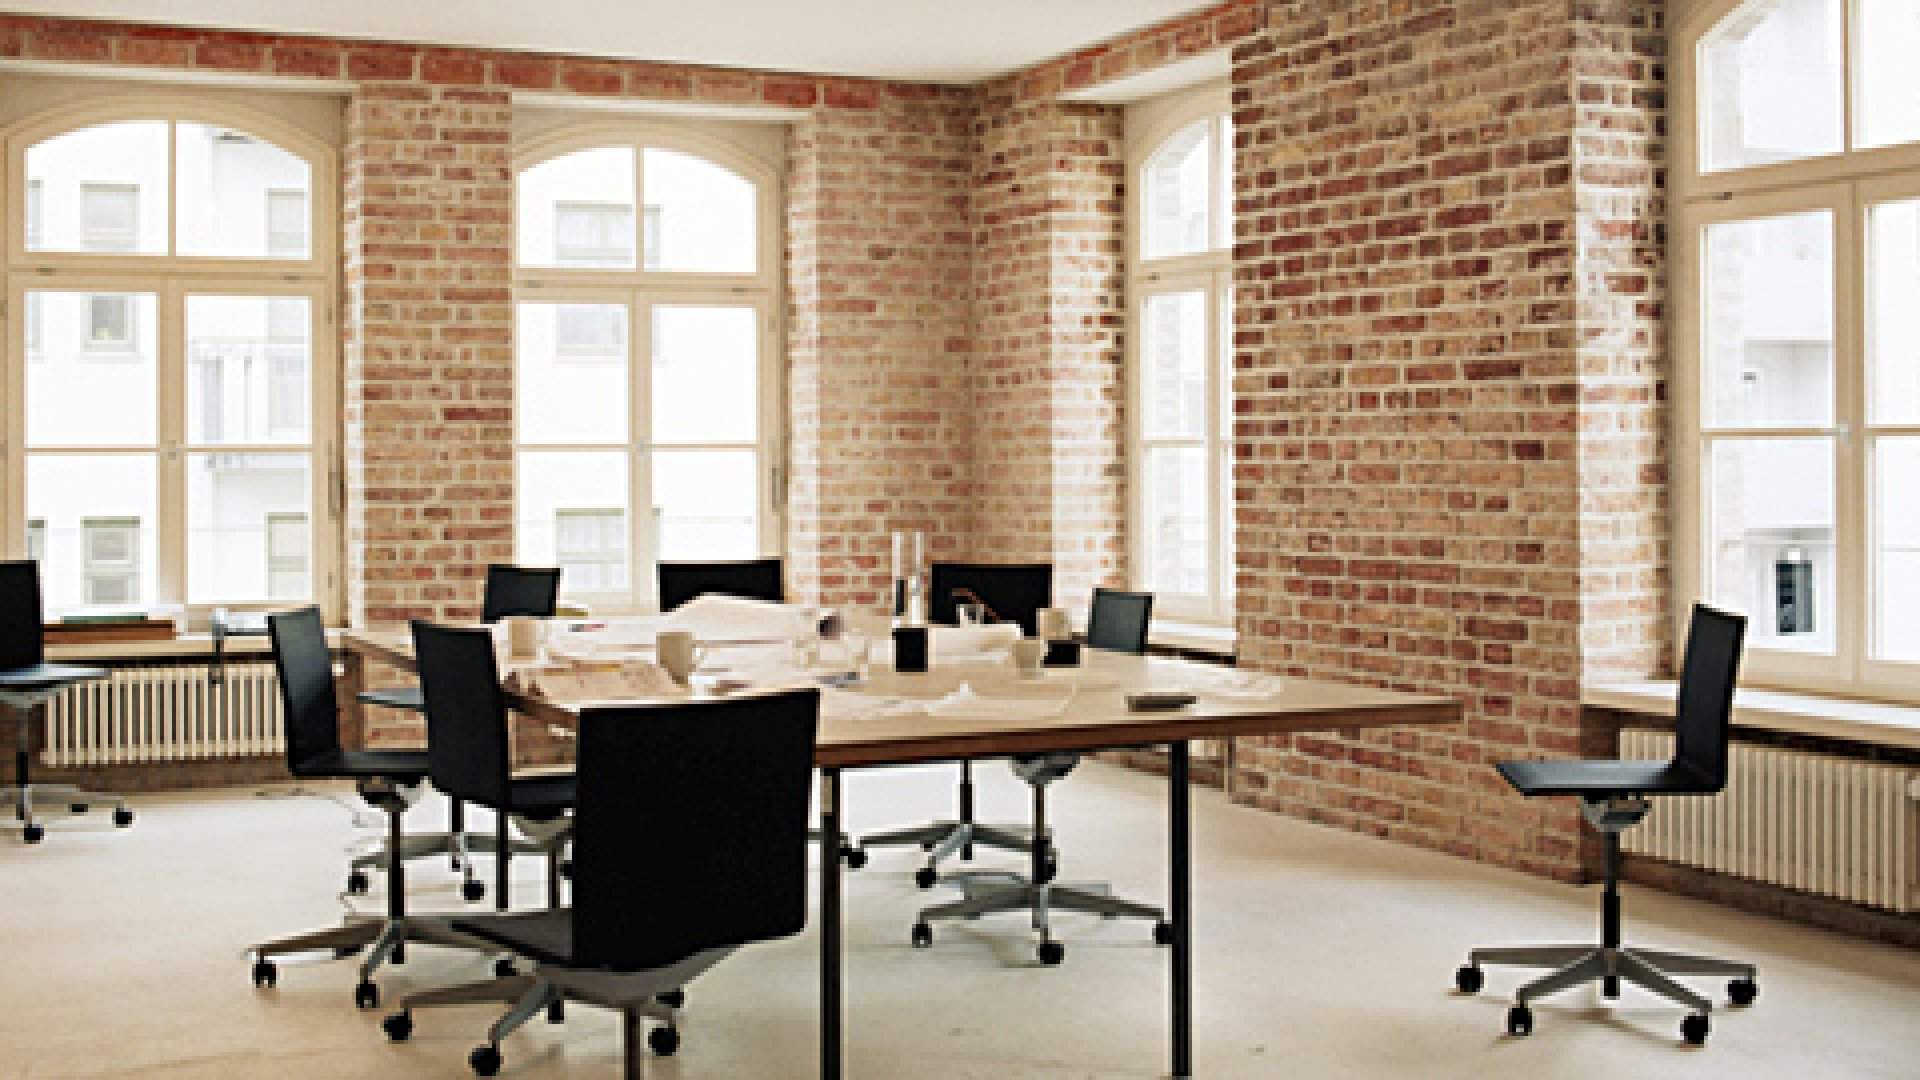 Temporary co-working facility NextSpace charges $20 for a day pass.